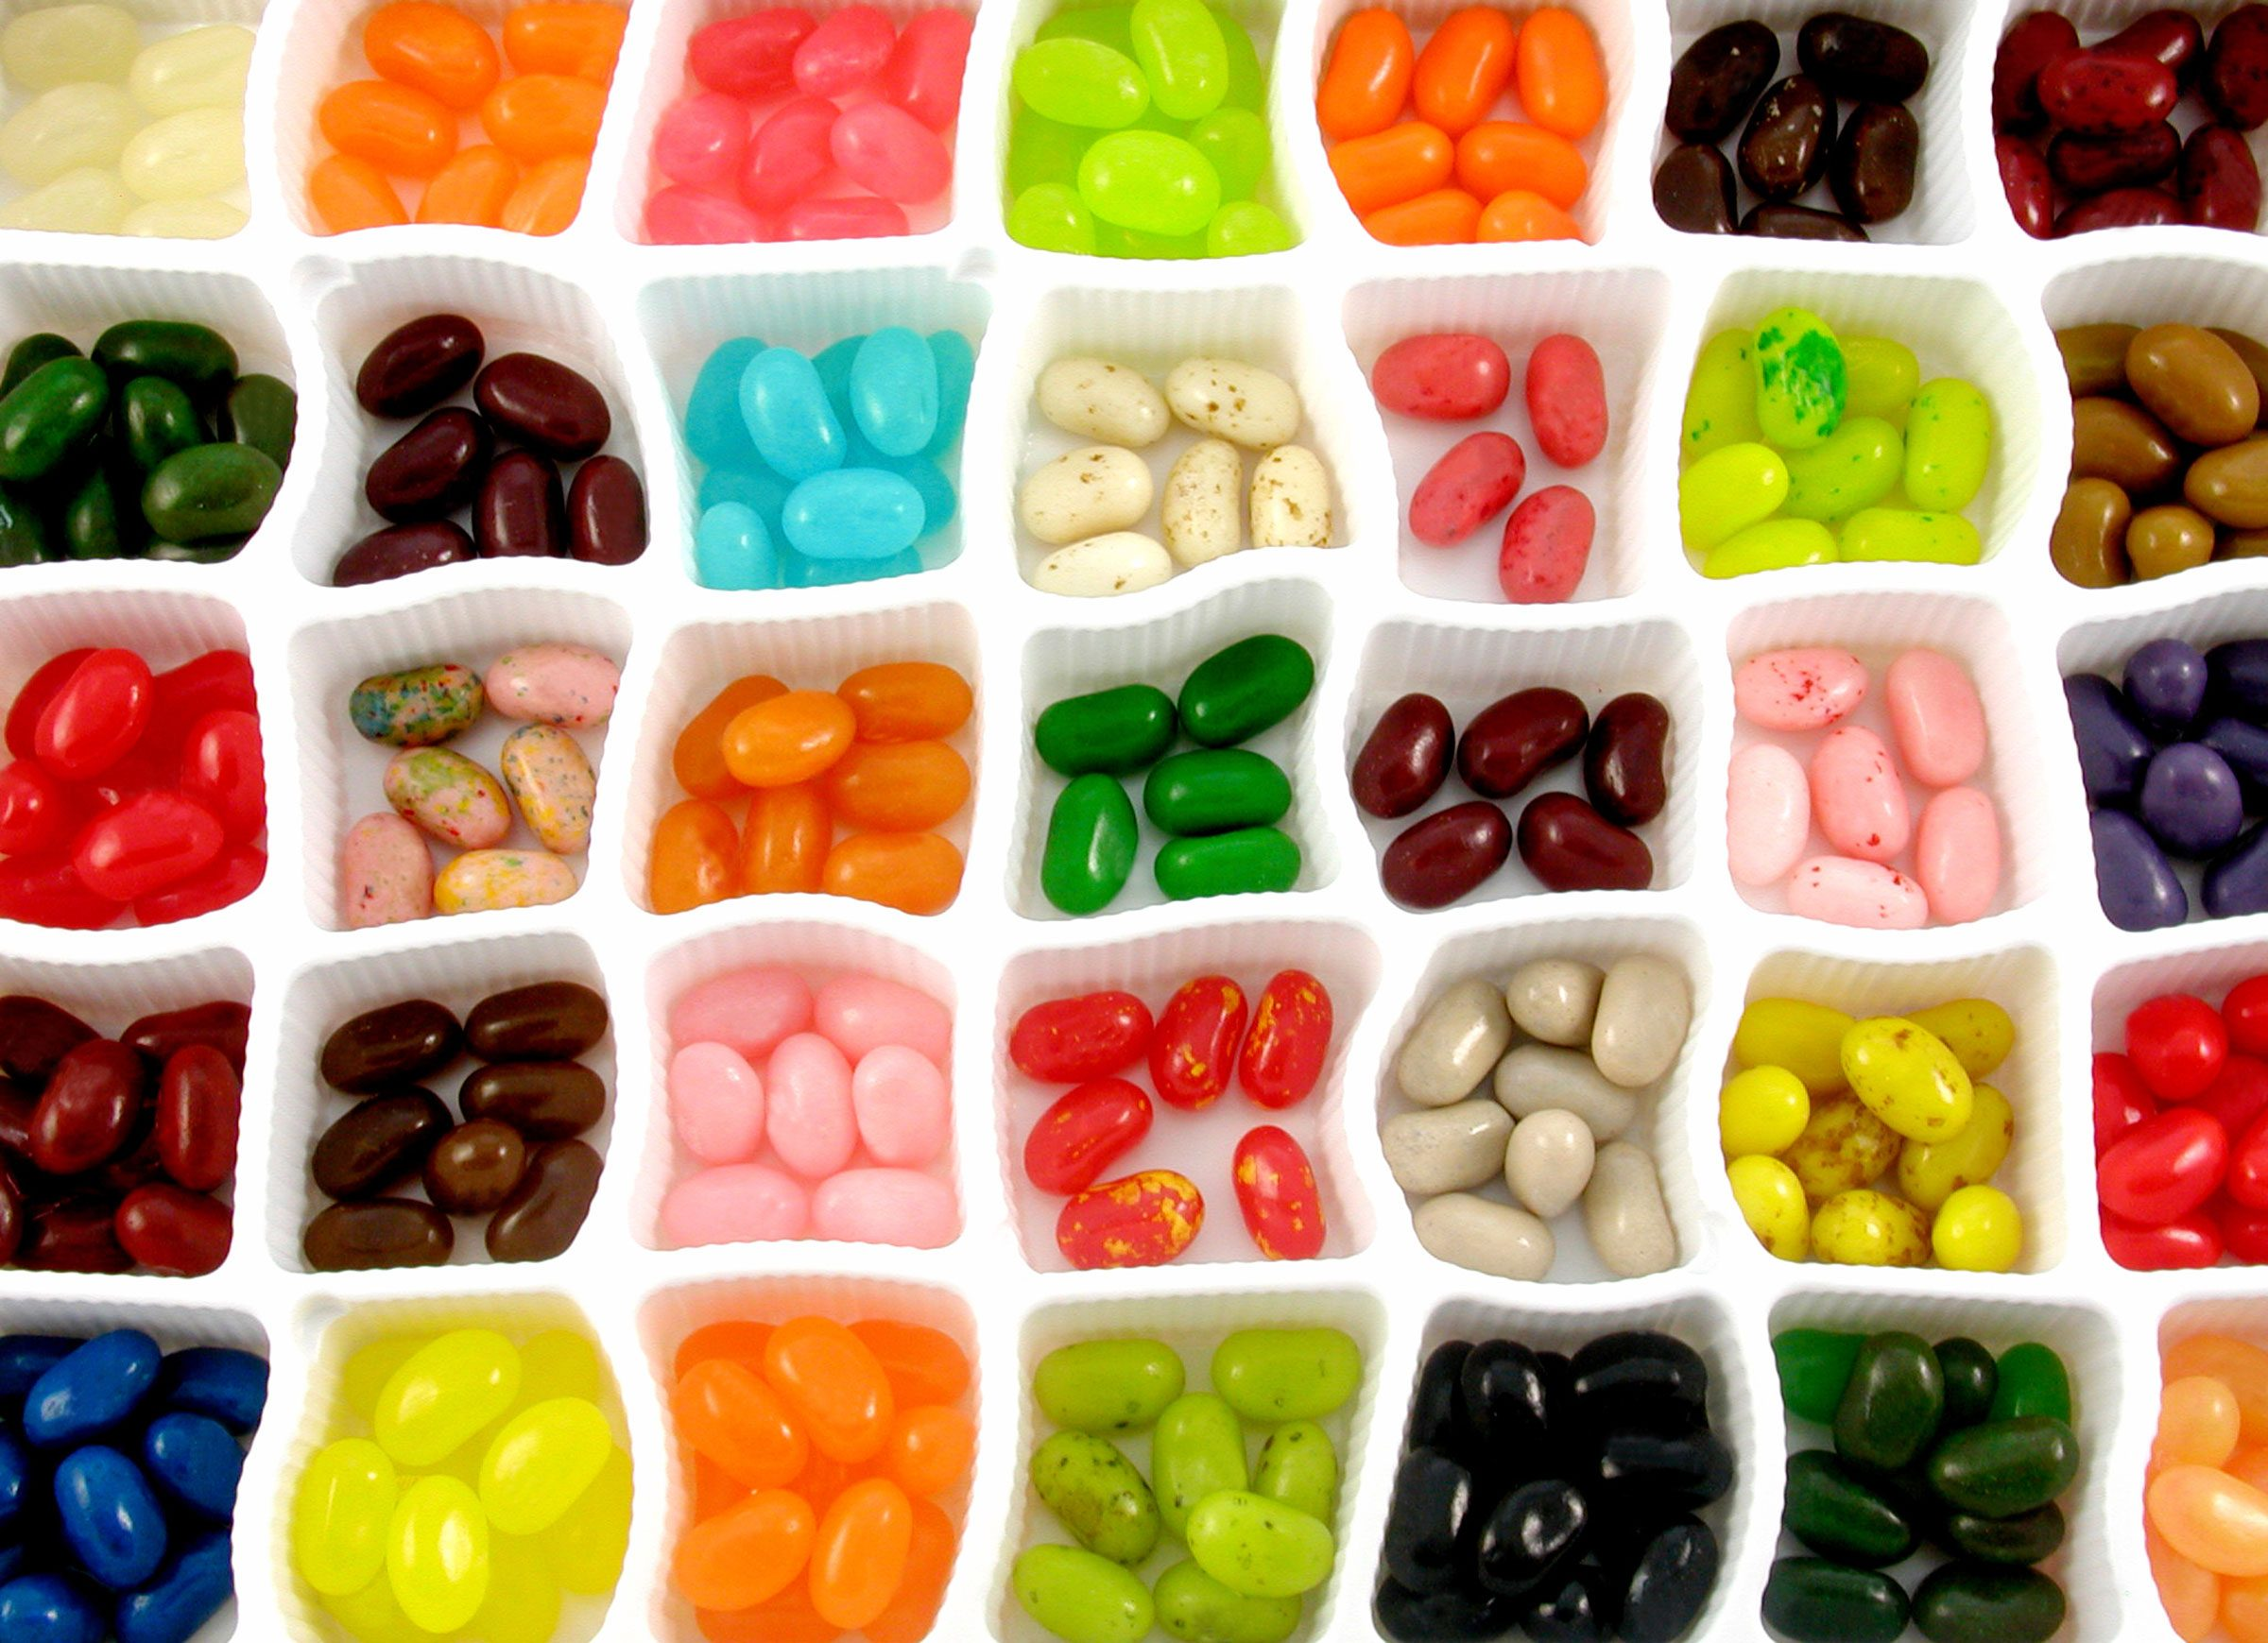 8 facts about jelly beans international preferences